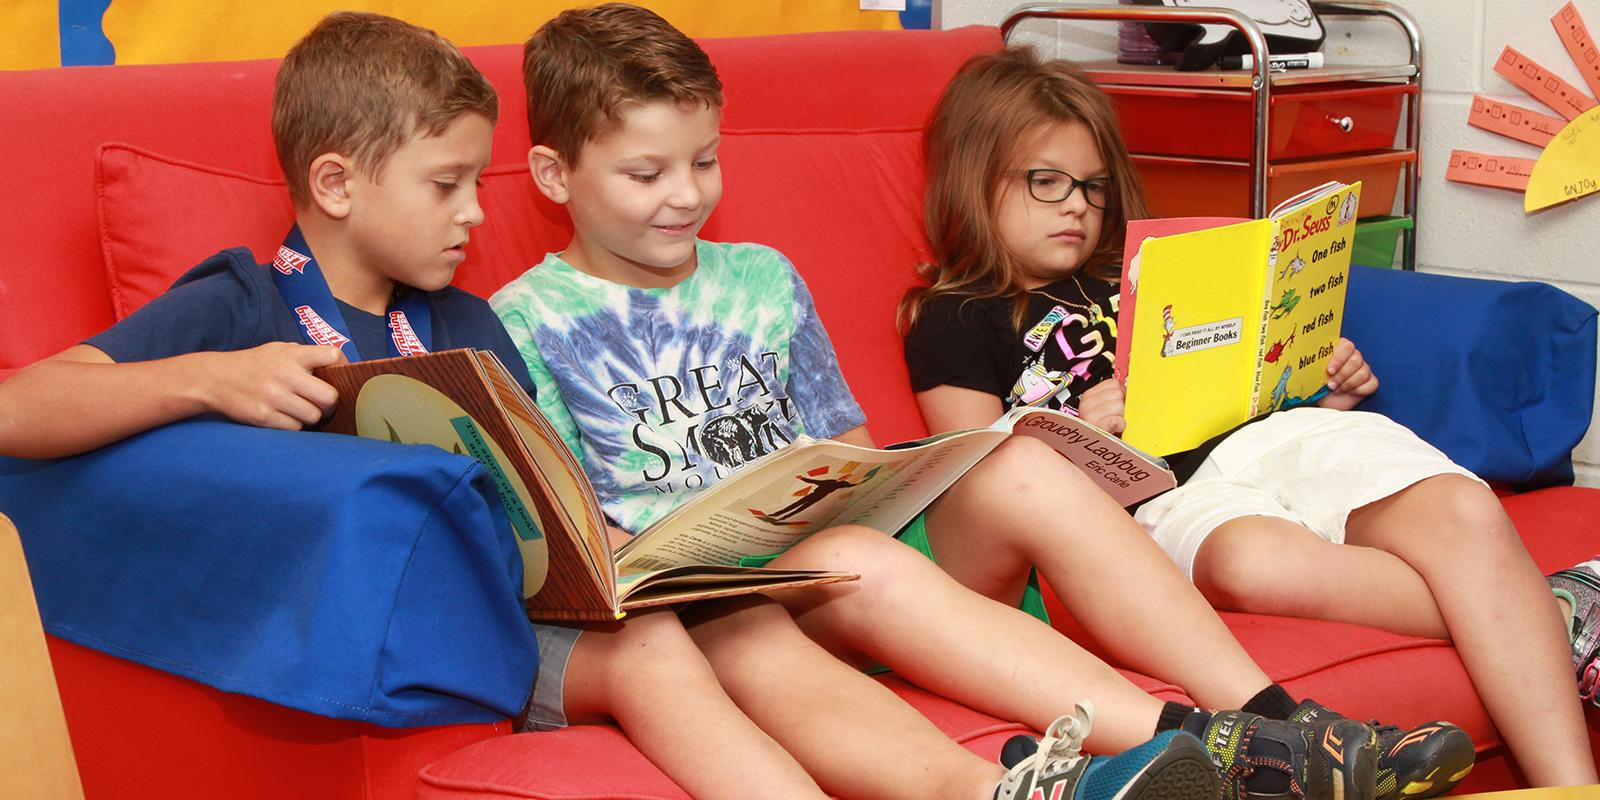 Three students read books